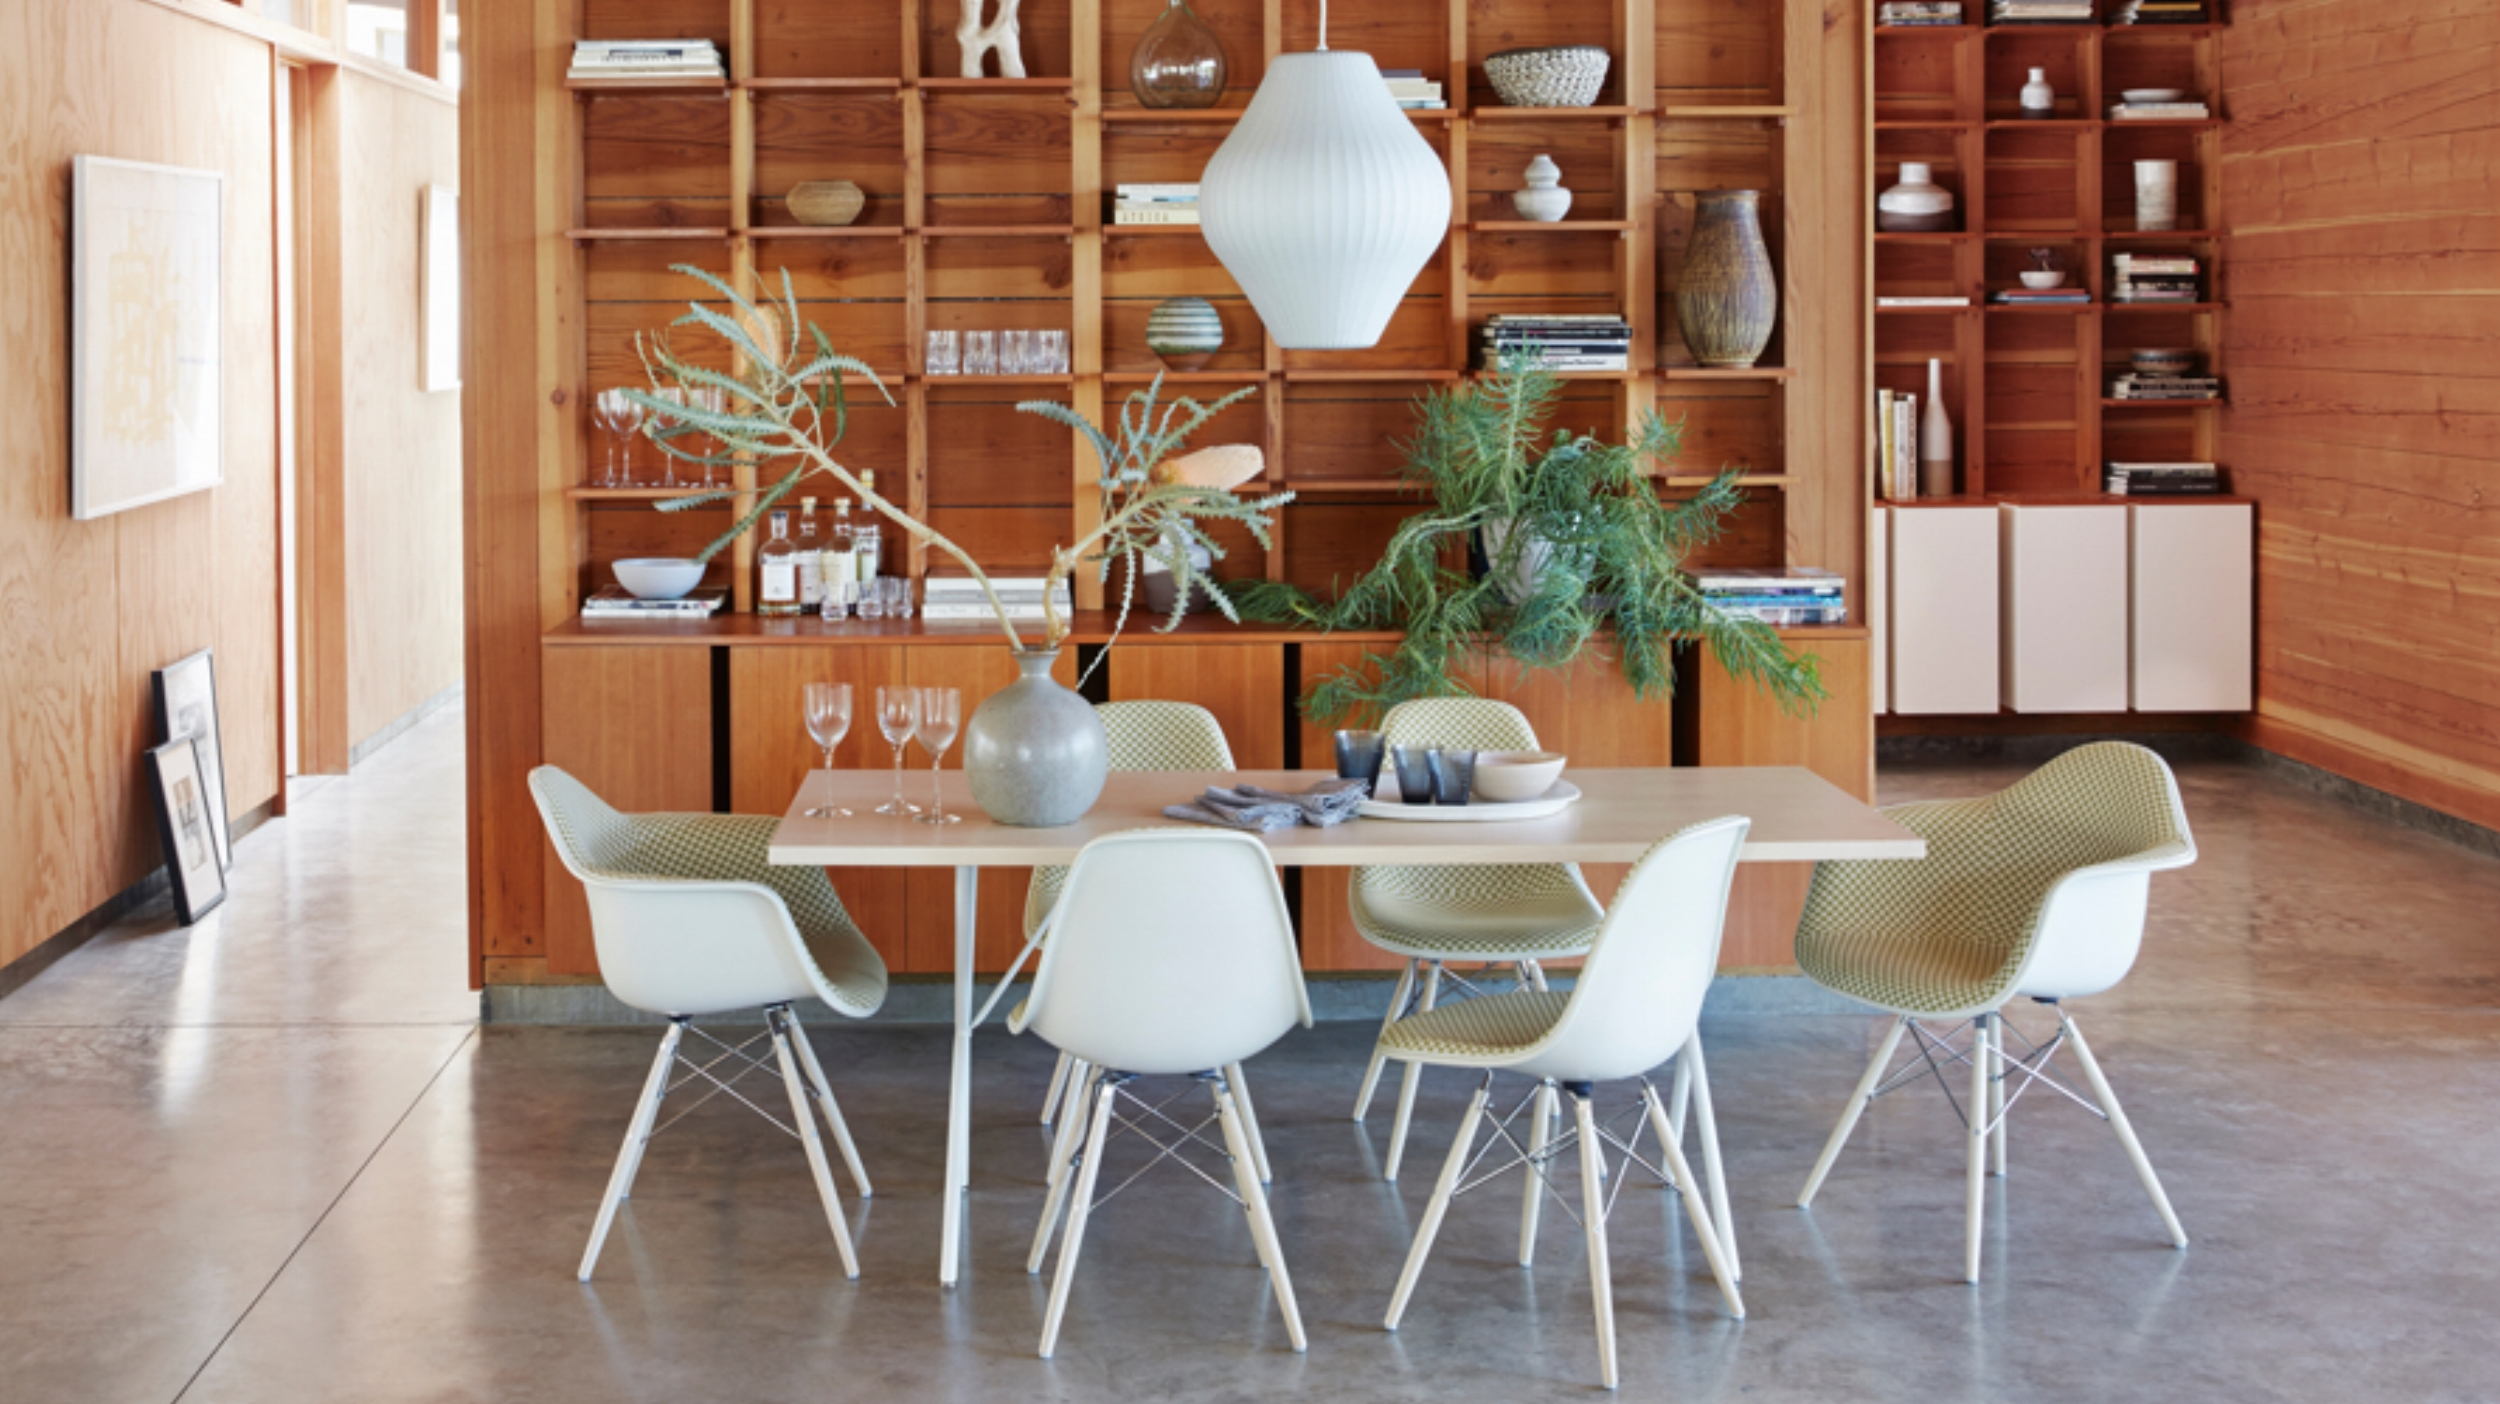 small dining chairs best gaming australia the 10 modern architect s guide disclaimer there are affiliate links in this post means